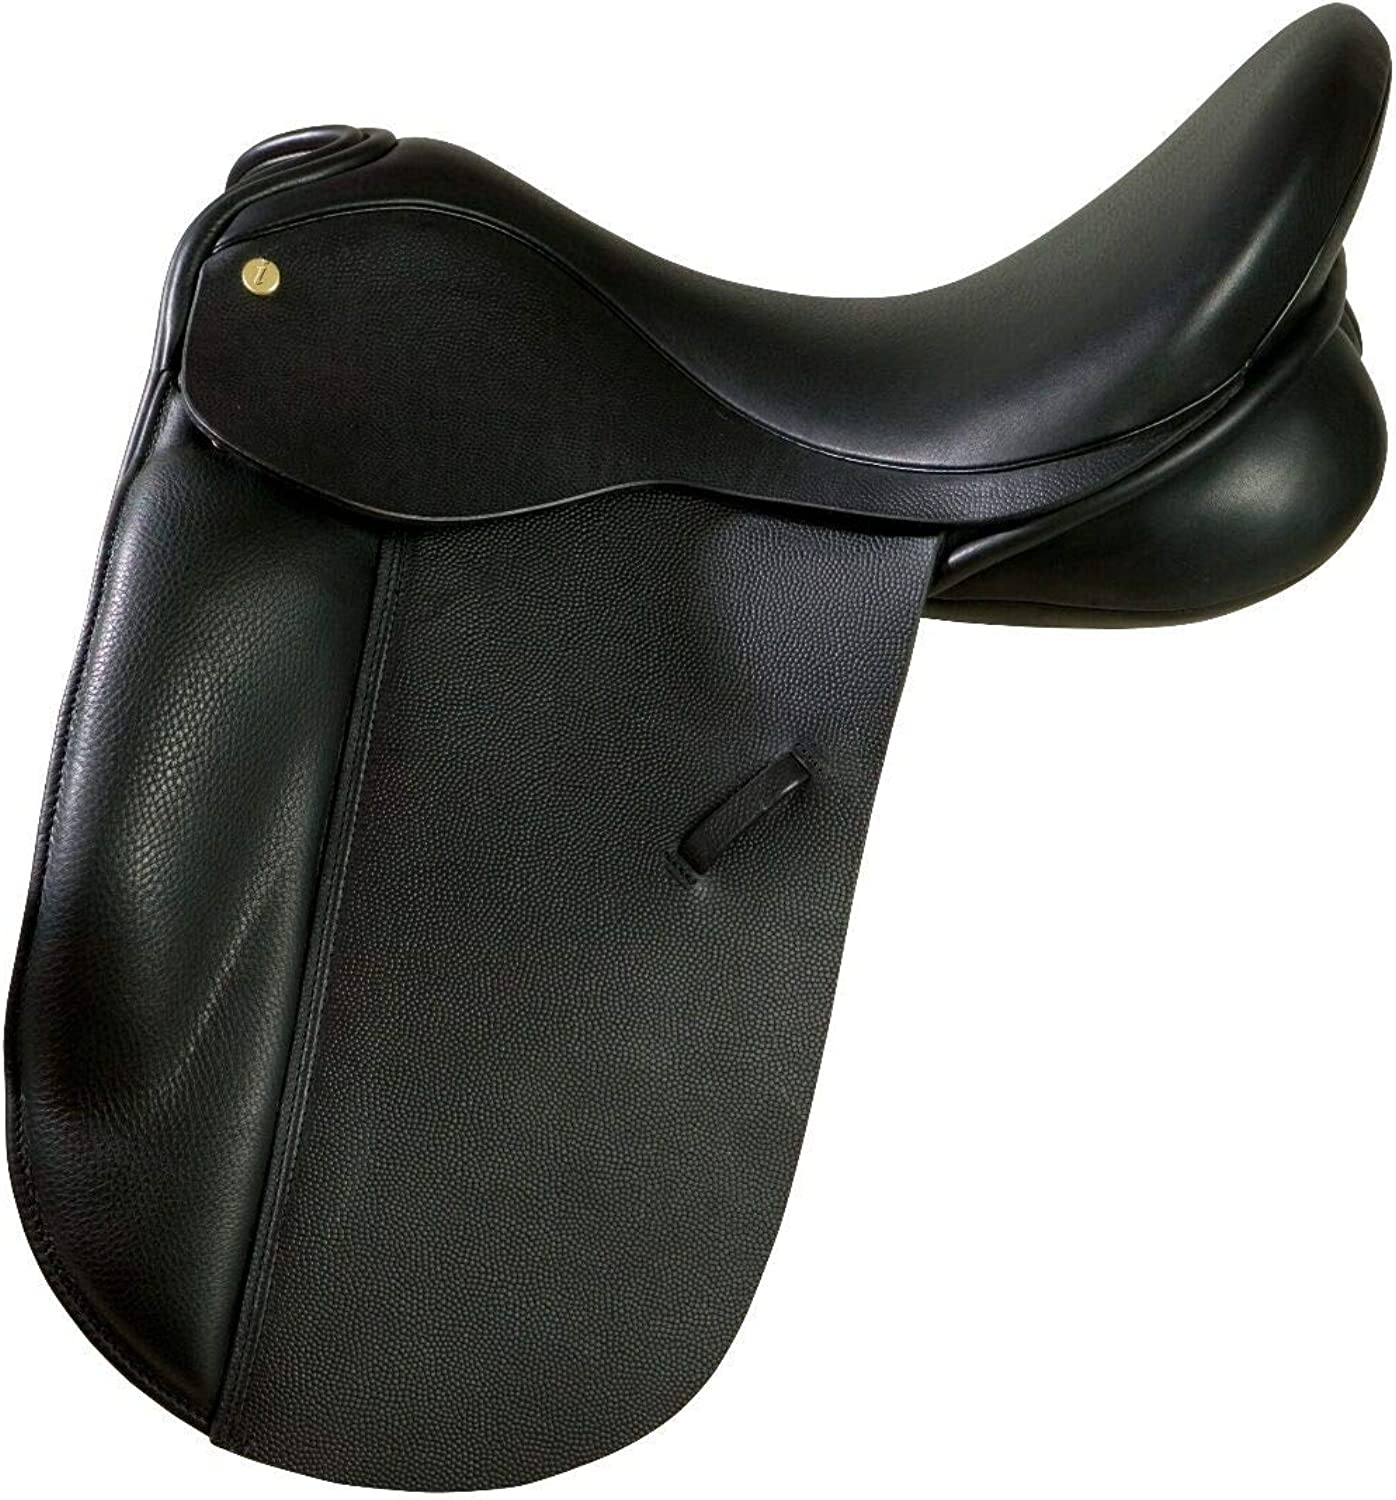 New Black Leather Dressage All Purpose English Horse Racing Tack & Saddle ES503 (15 Inches, Black)